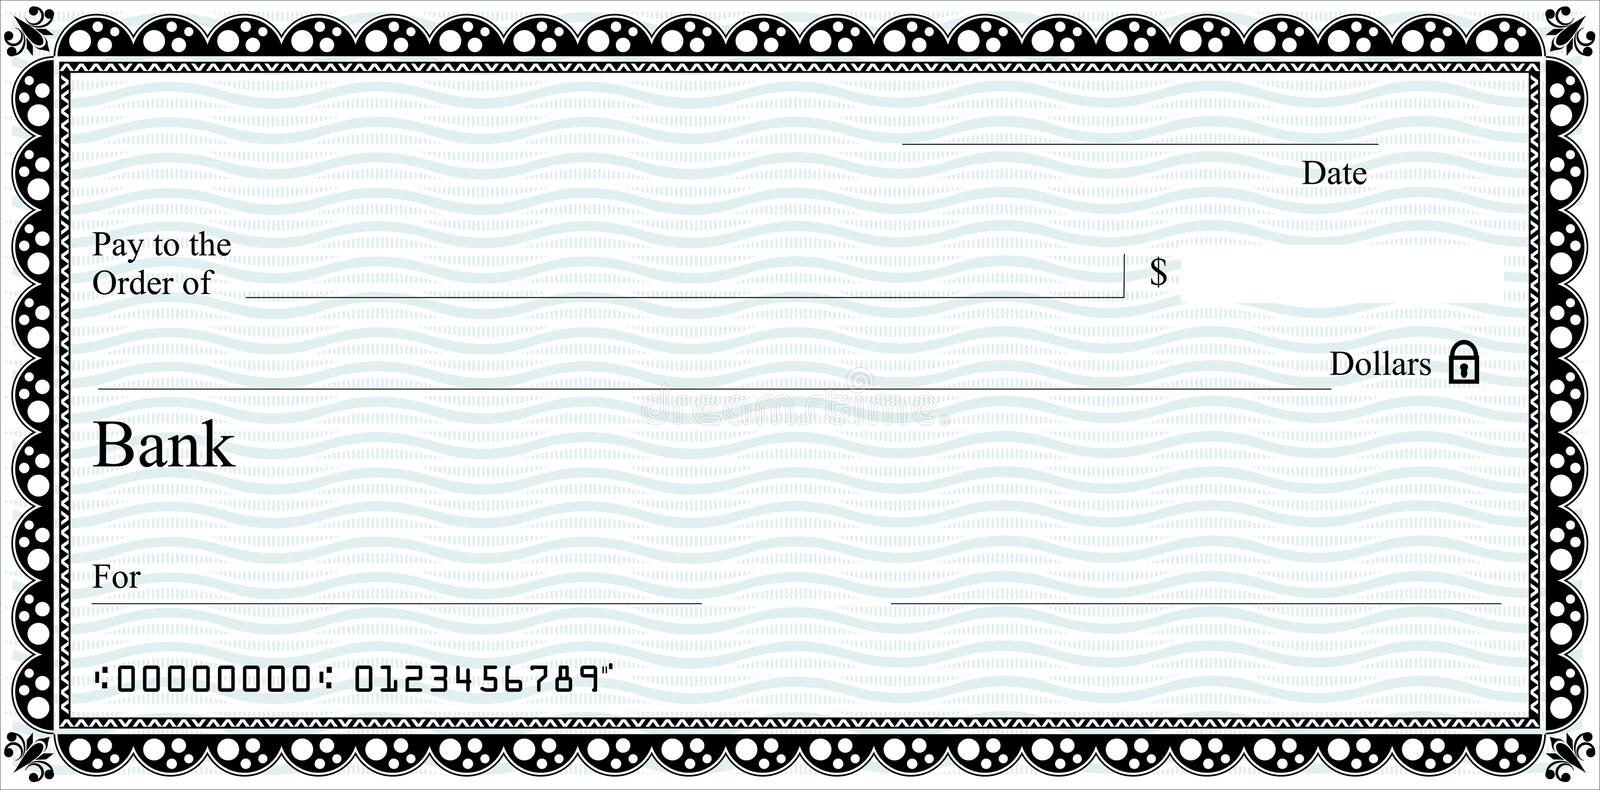 Cheque. A generic cheque template. With vector download option. Ideal for certificate